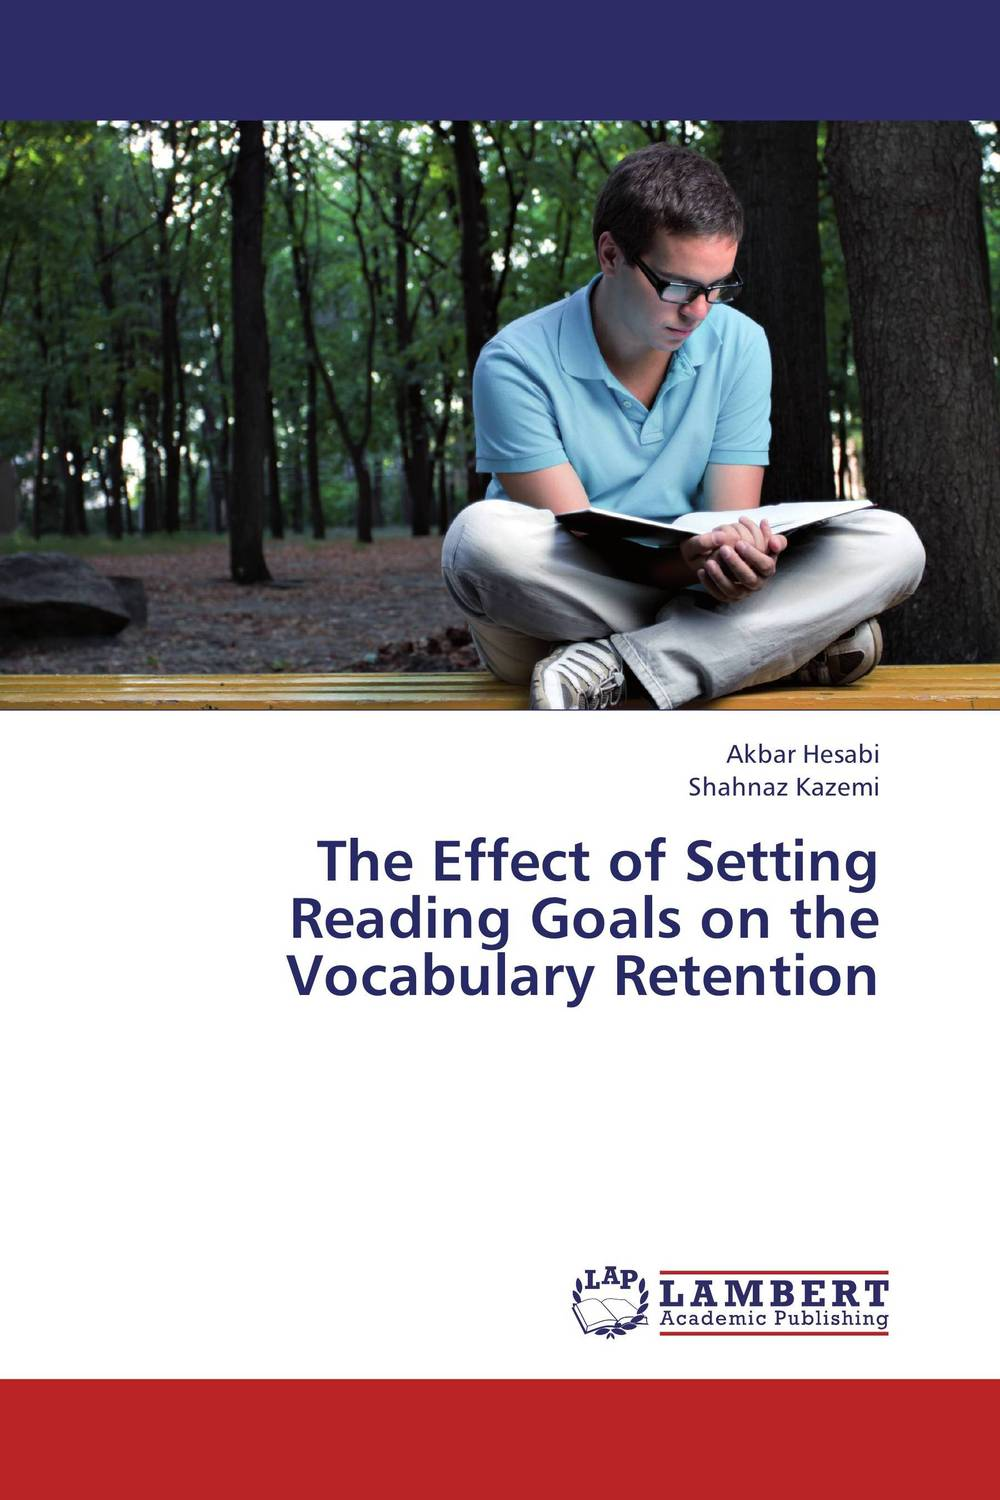 The Effect of Setting Reading Goals on the Vocabulary Retention the effect of setting reading goals on the vocabulary retention